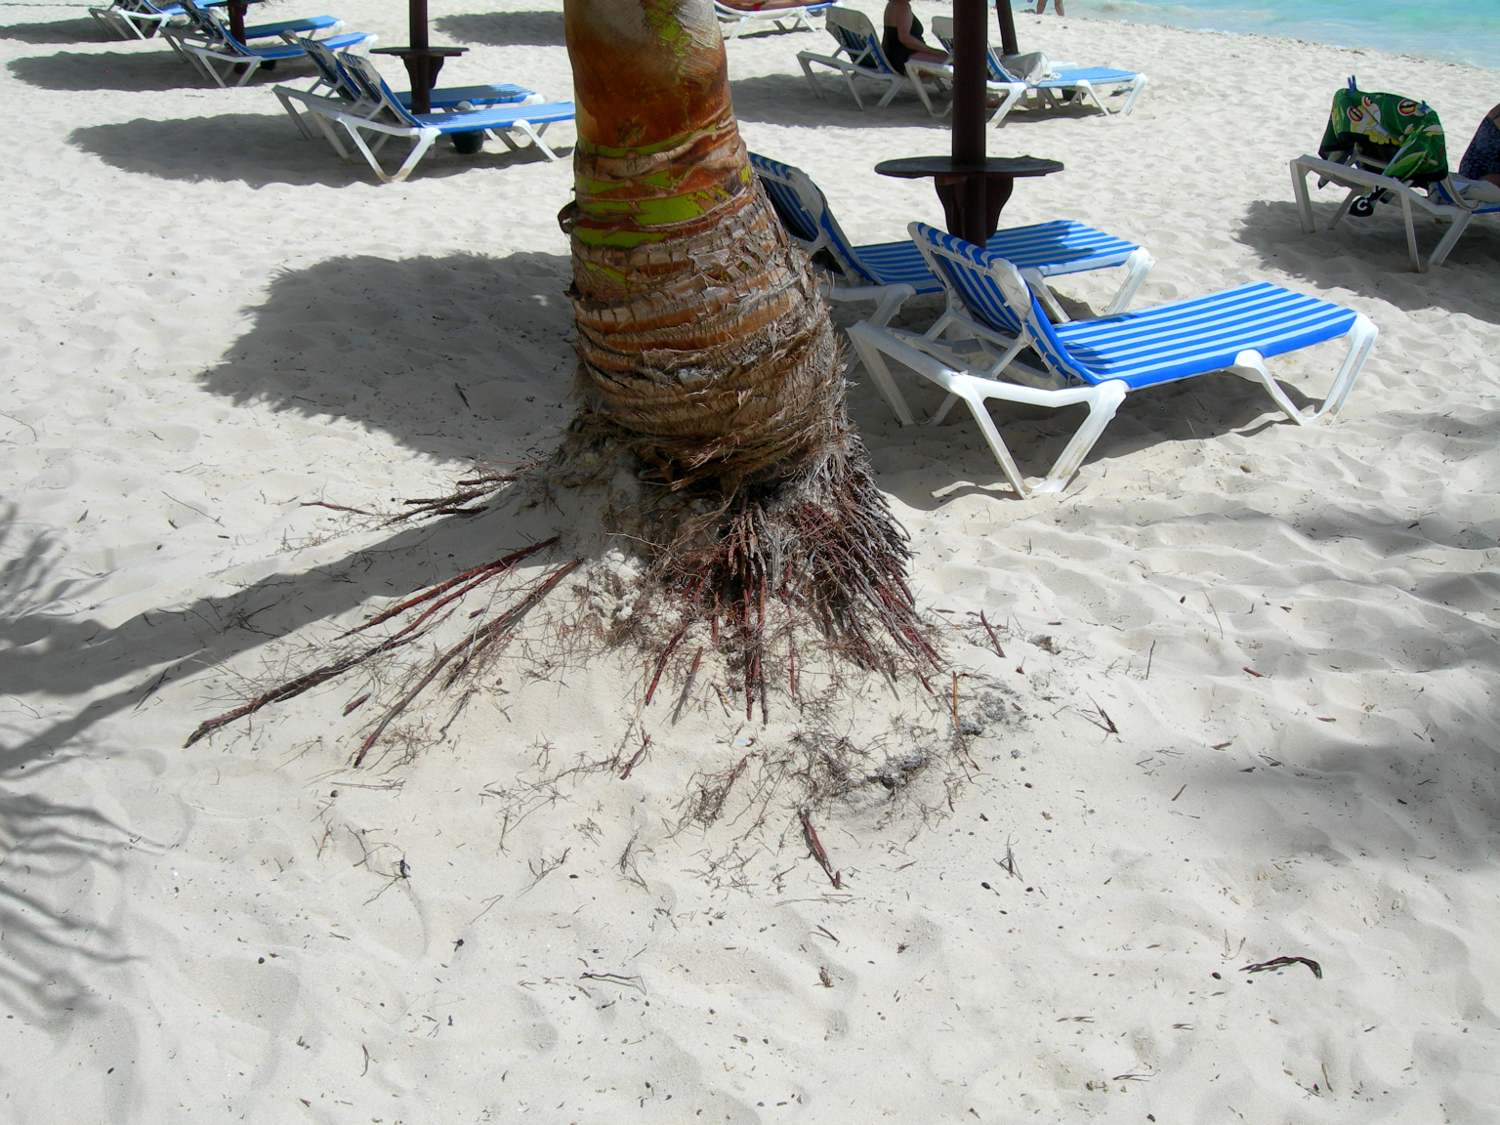 The Dominican Republic - root of a tree in the sandy beach